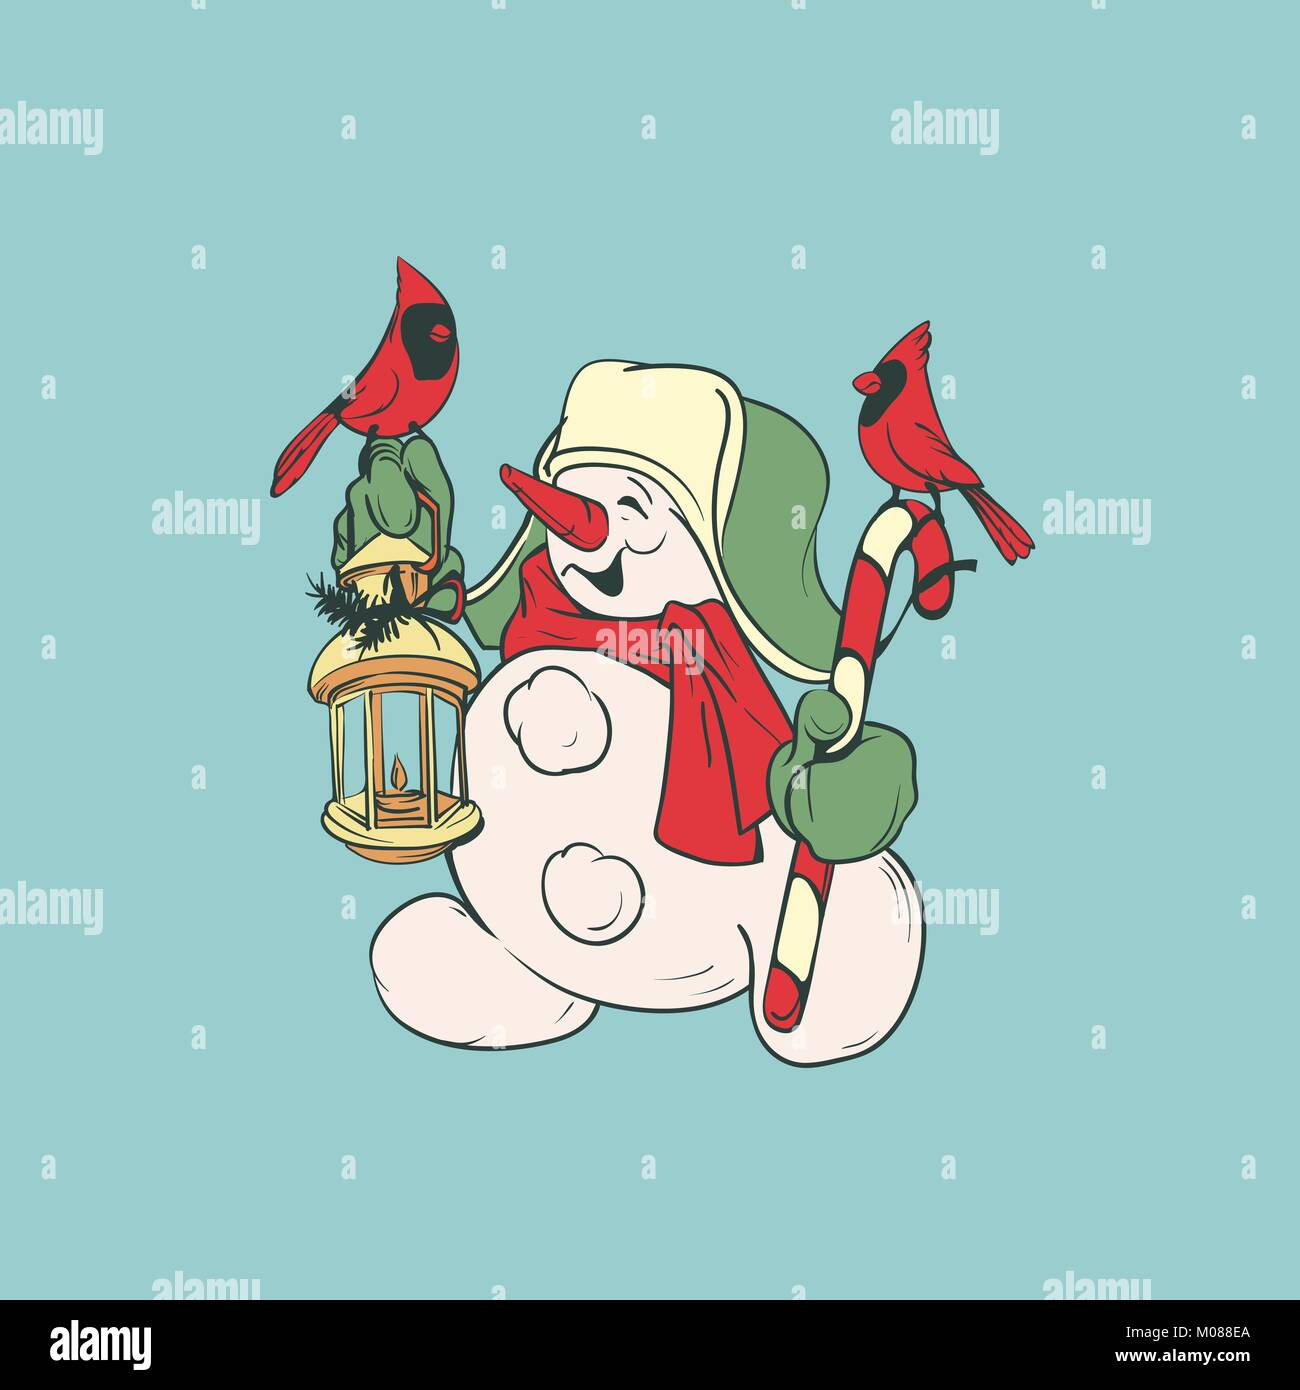 Cute smiling snowman with candy cane and lantern, cardinal birds - Stock Vector